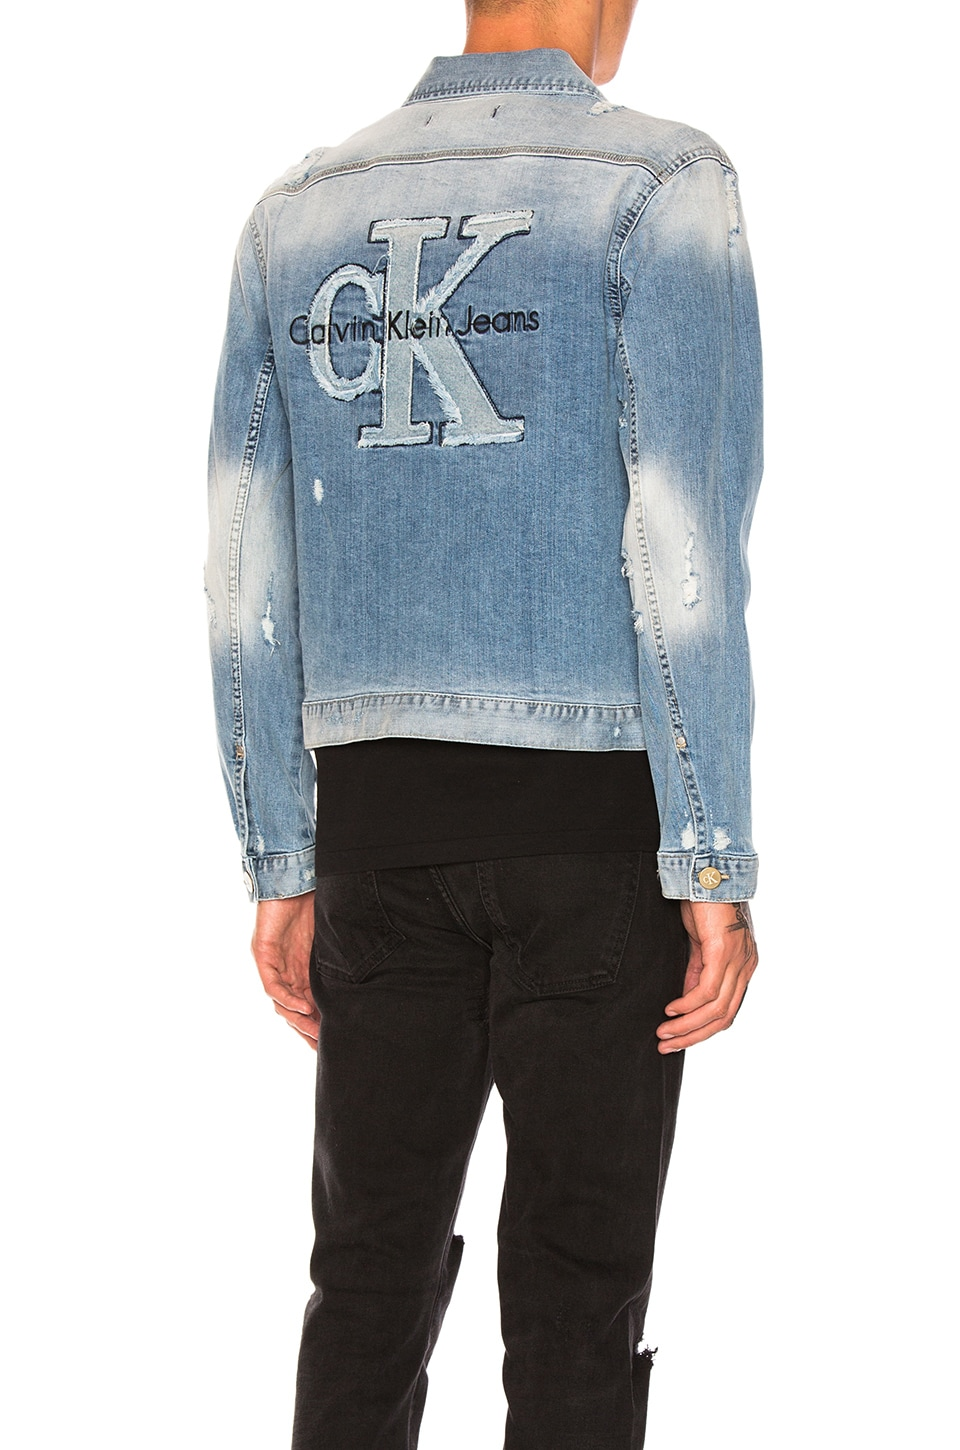 Applique Trucker Jacket by Calvin Klein